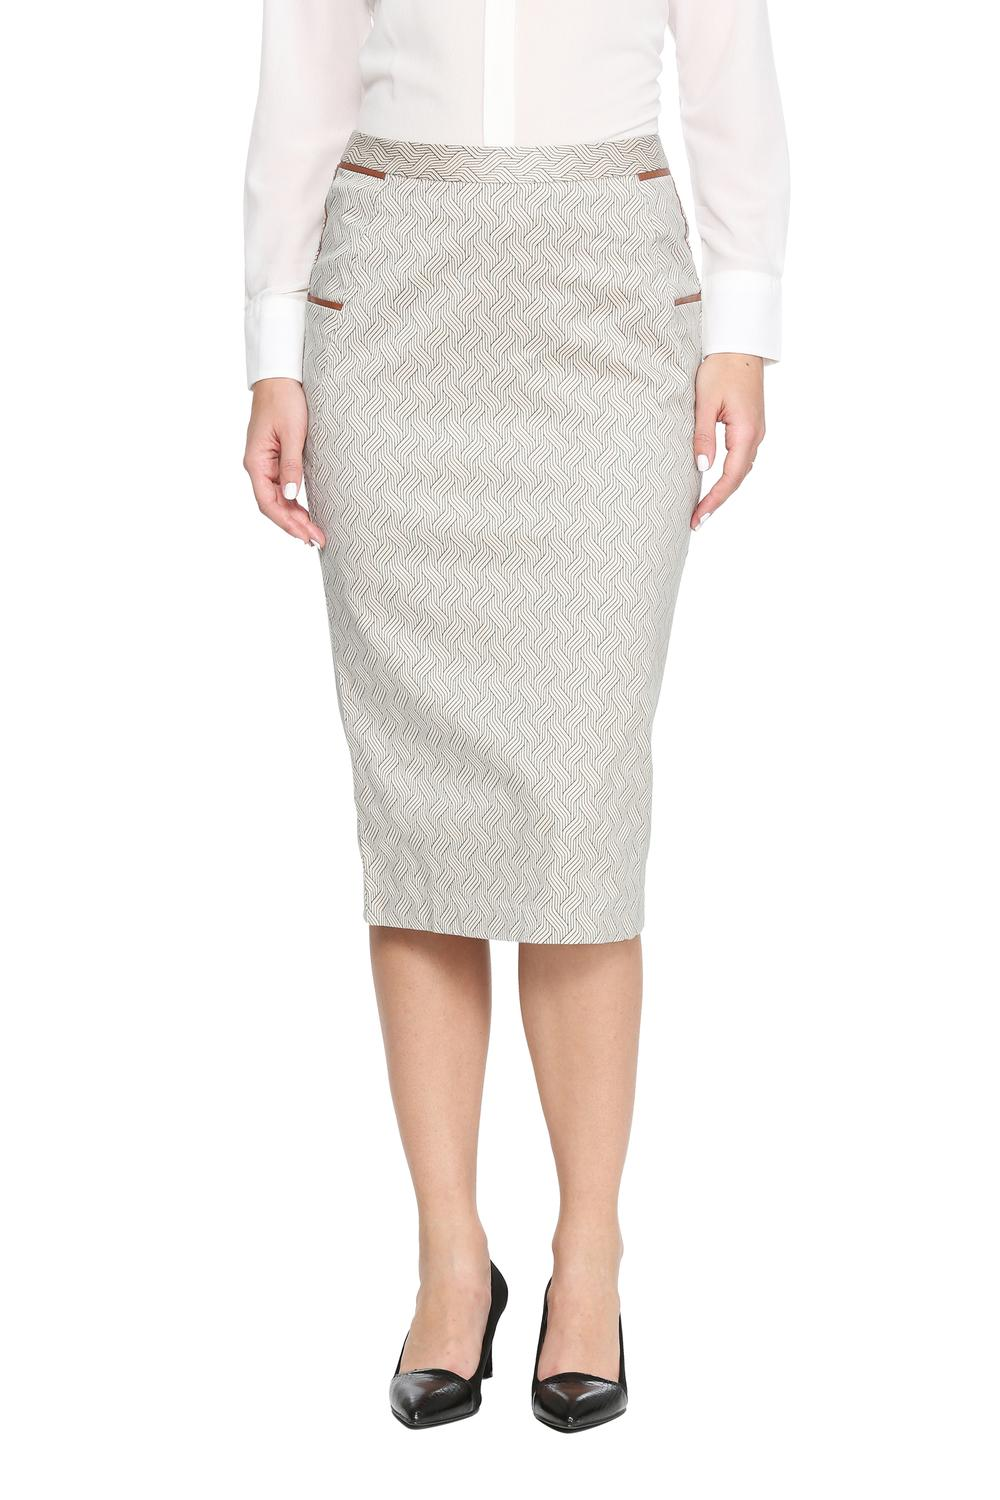 e4fcb6e1fa Solly Skirts, Allen Solly Beige Skirt for Women at Allensolly.com